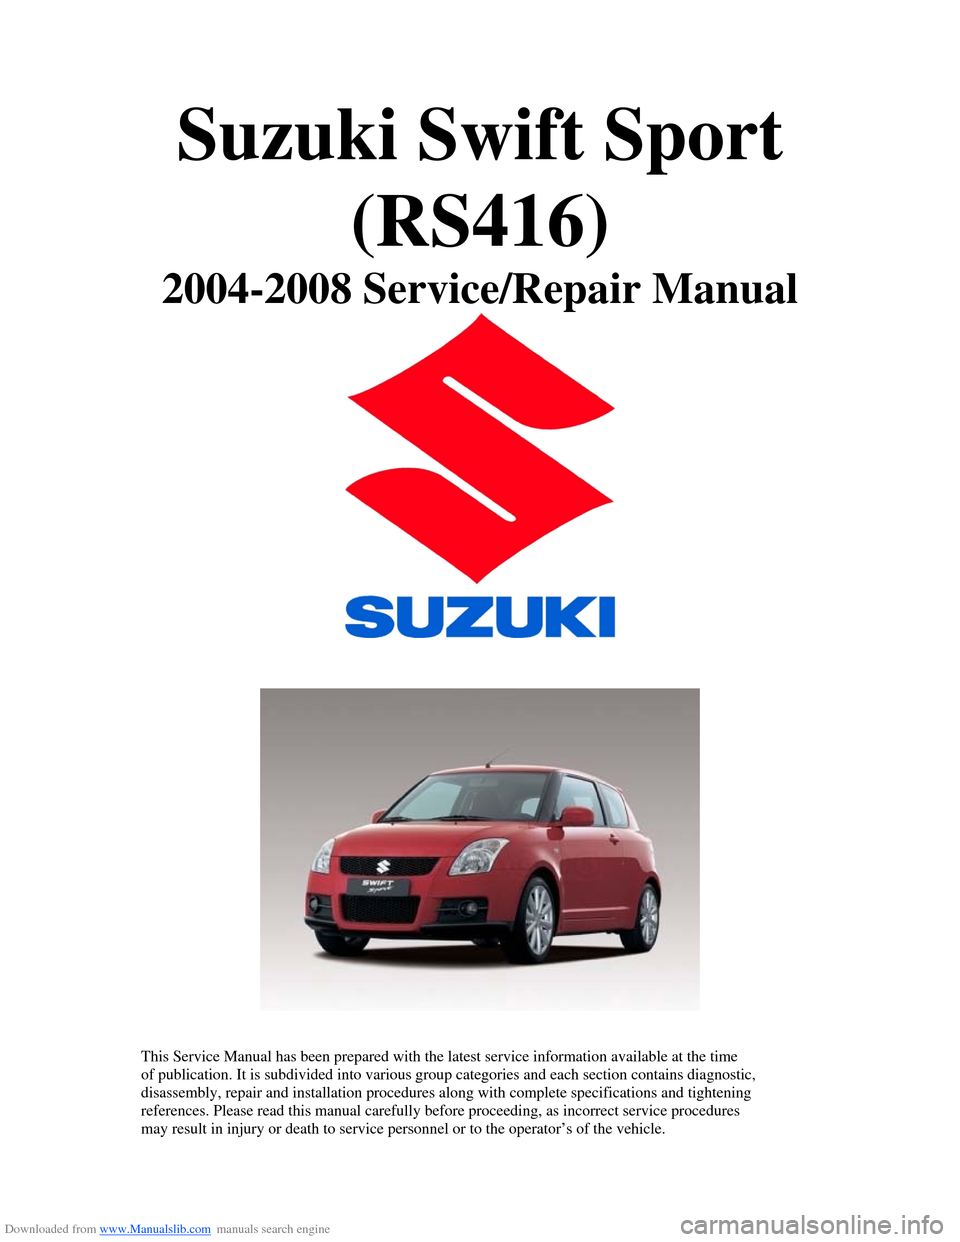 SUZUKI SWIFT 2007 2 G Service Workshop Manual